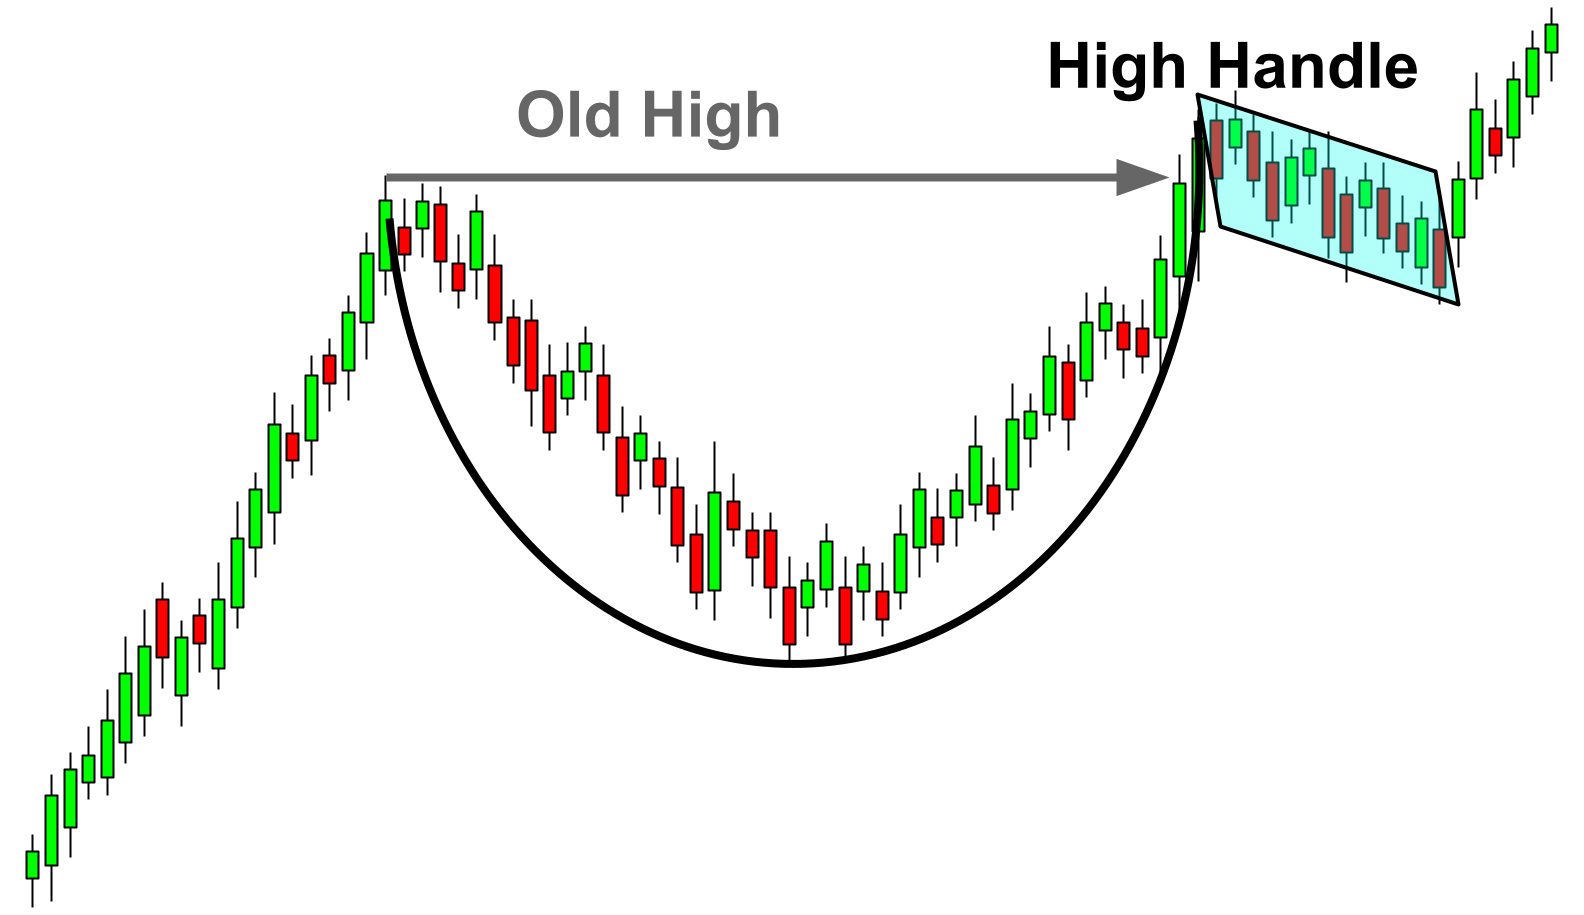 A complete cup and handle pattern formation.